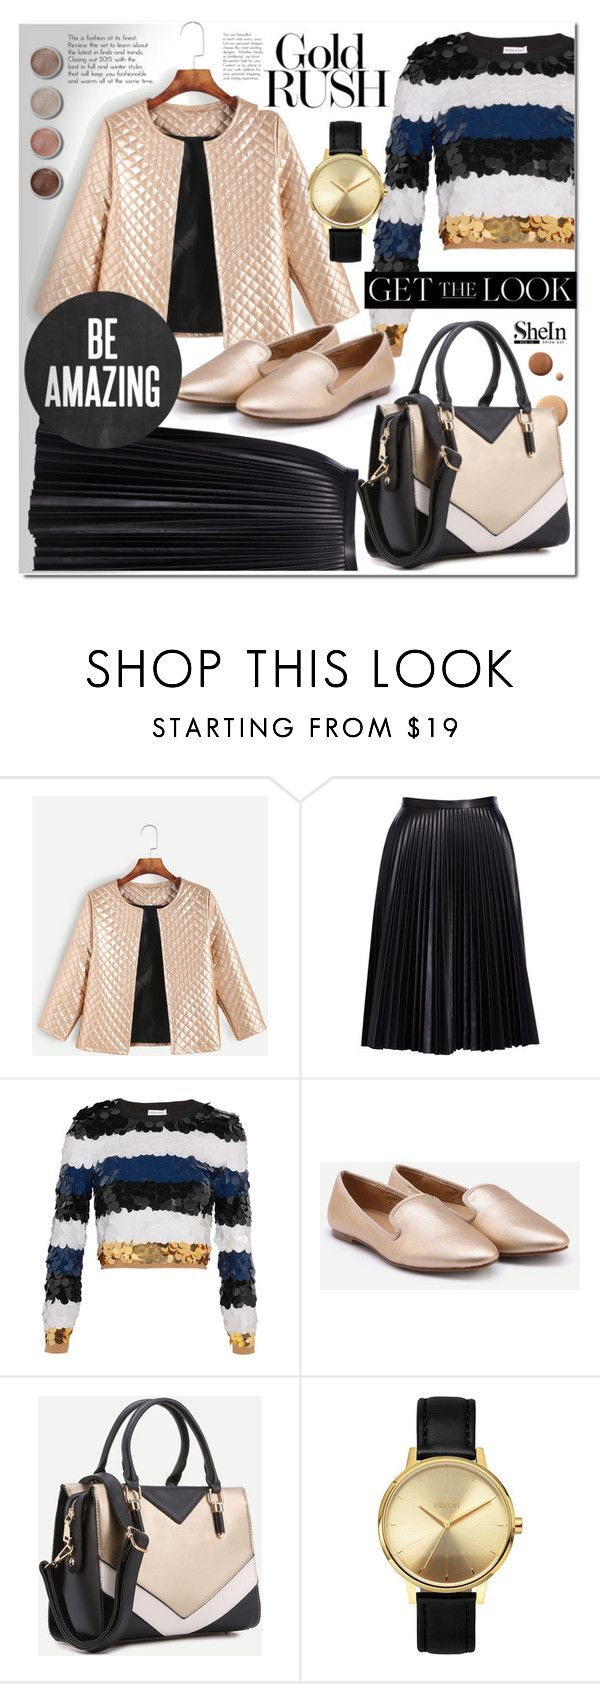 """""""Shein 4"""" by e-mina-87 ❤ liked on Polyvore featuring Cusp by Neiman Marcus, Sonia Rykiel, Lumière, Terre Mère and Nixon"""